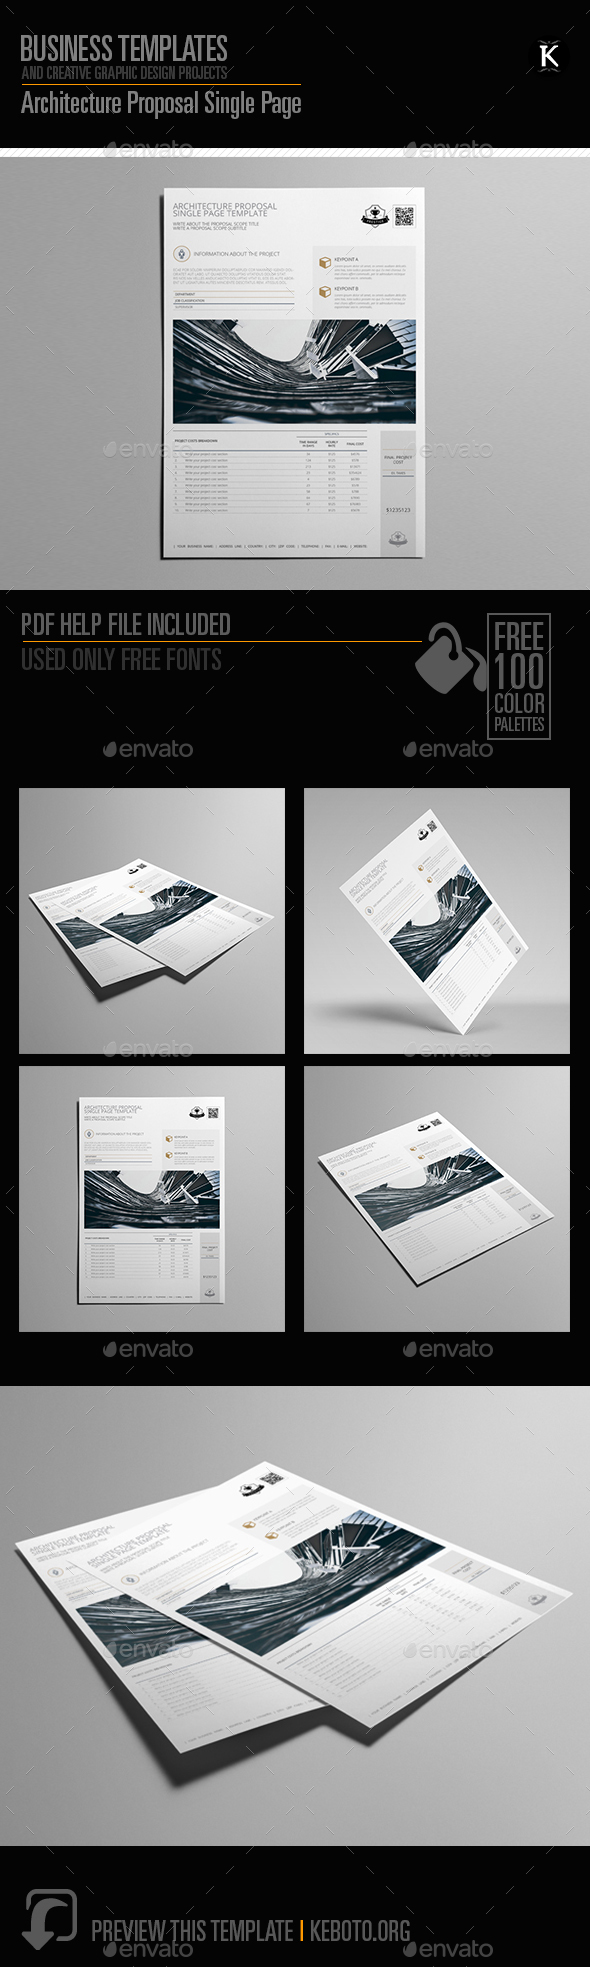 Architecture Proposal Single Page - Miscellaneous Print Templates